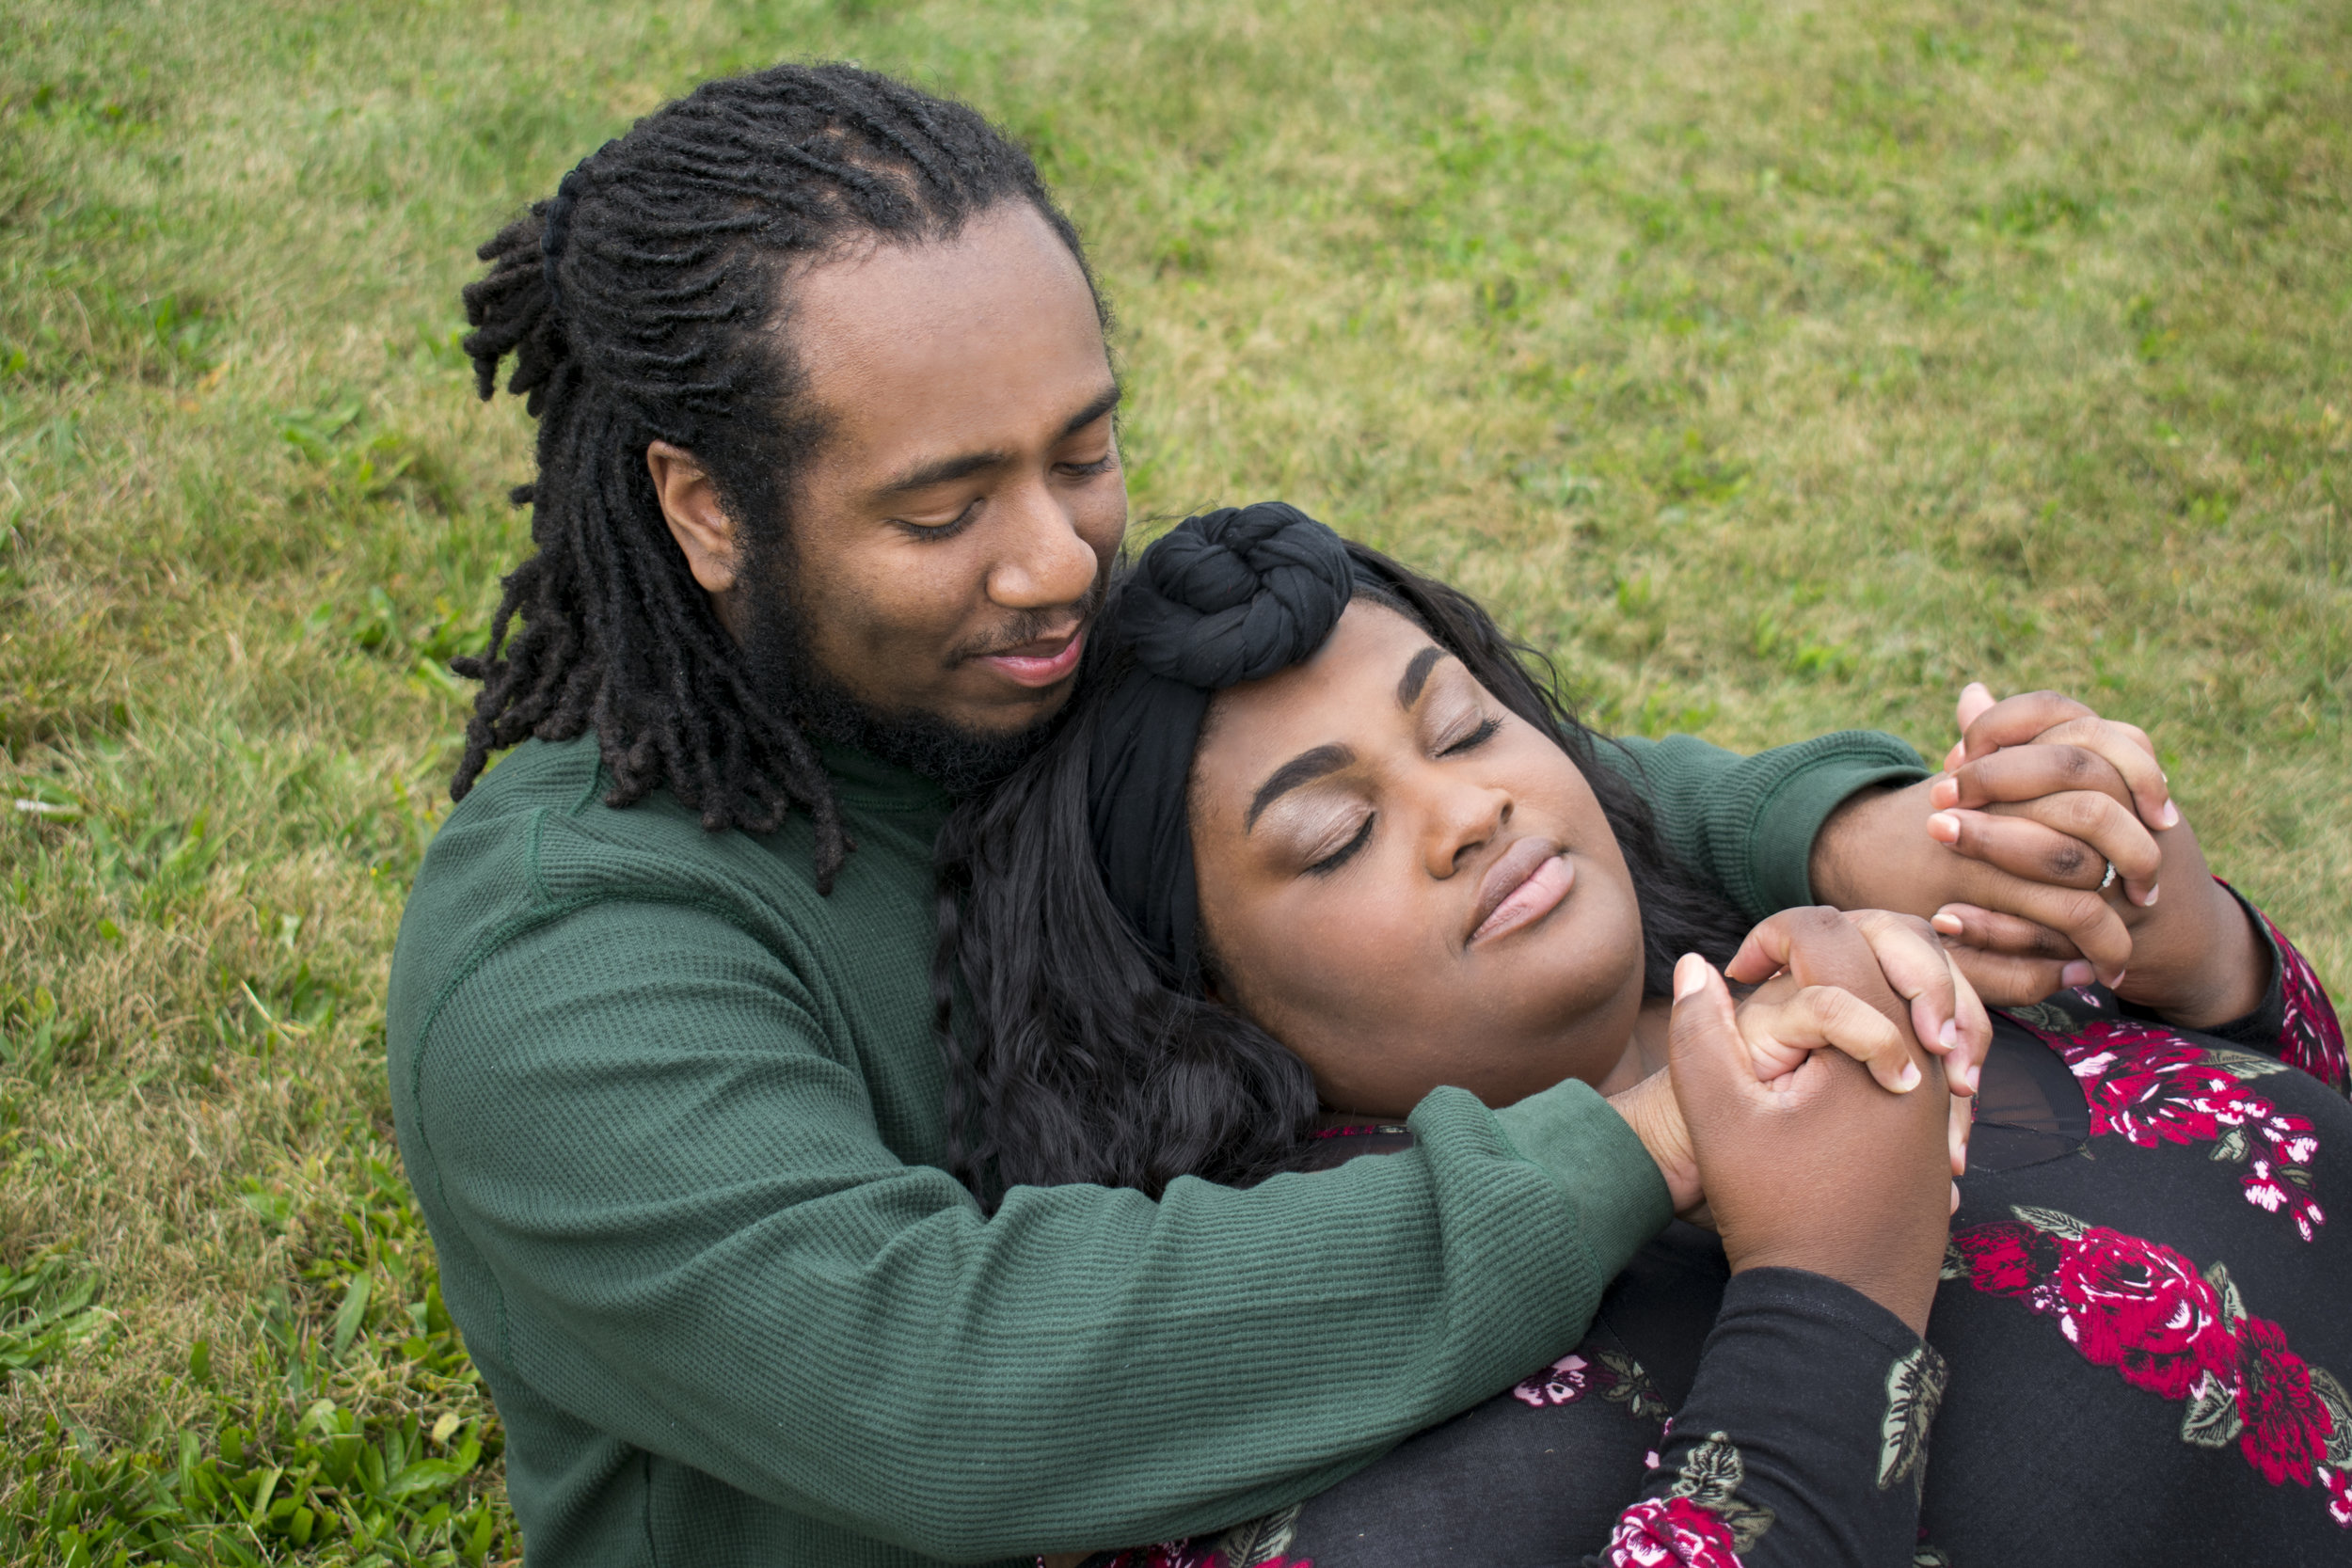 See more from Shanelle & Jamal's Engagement